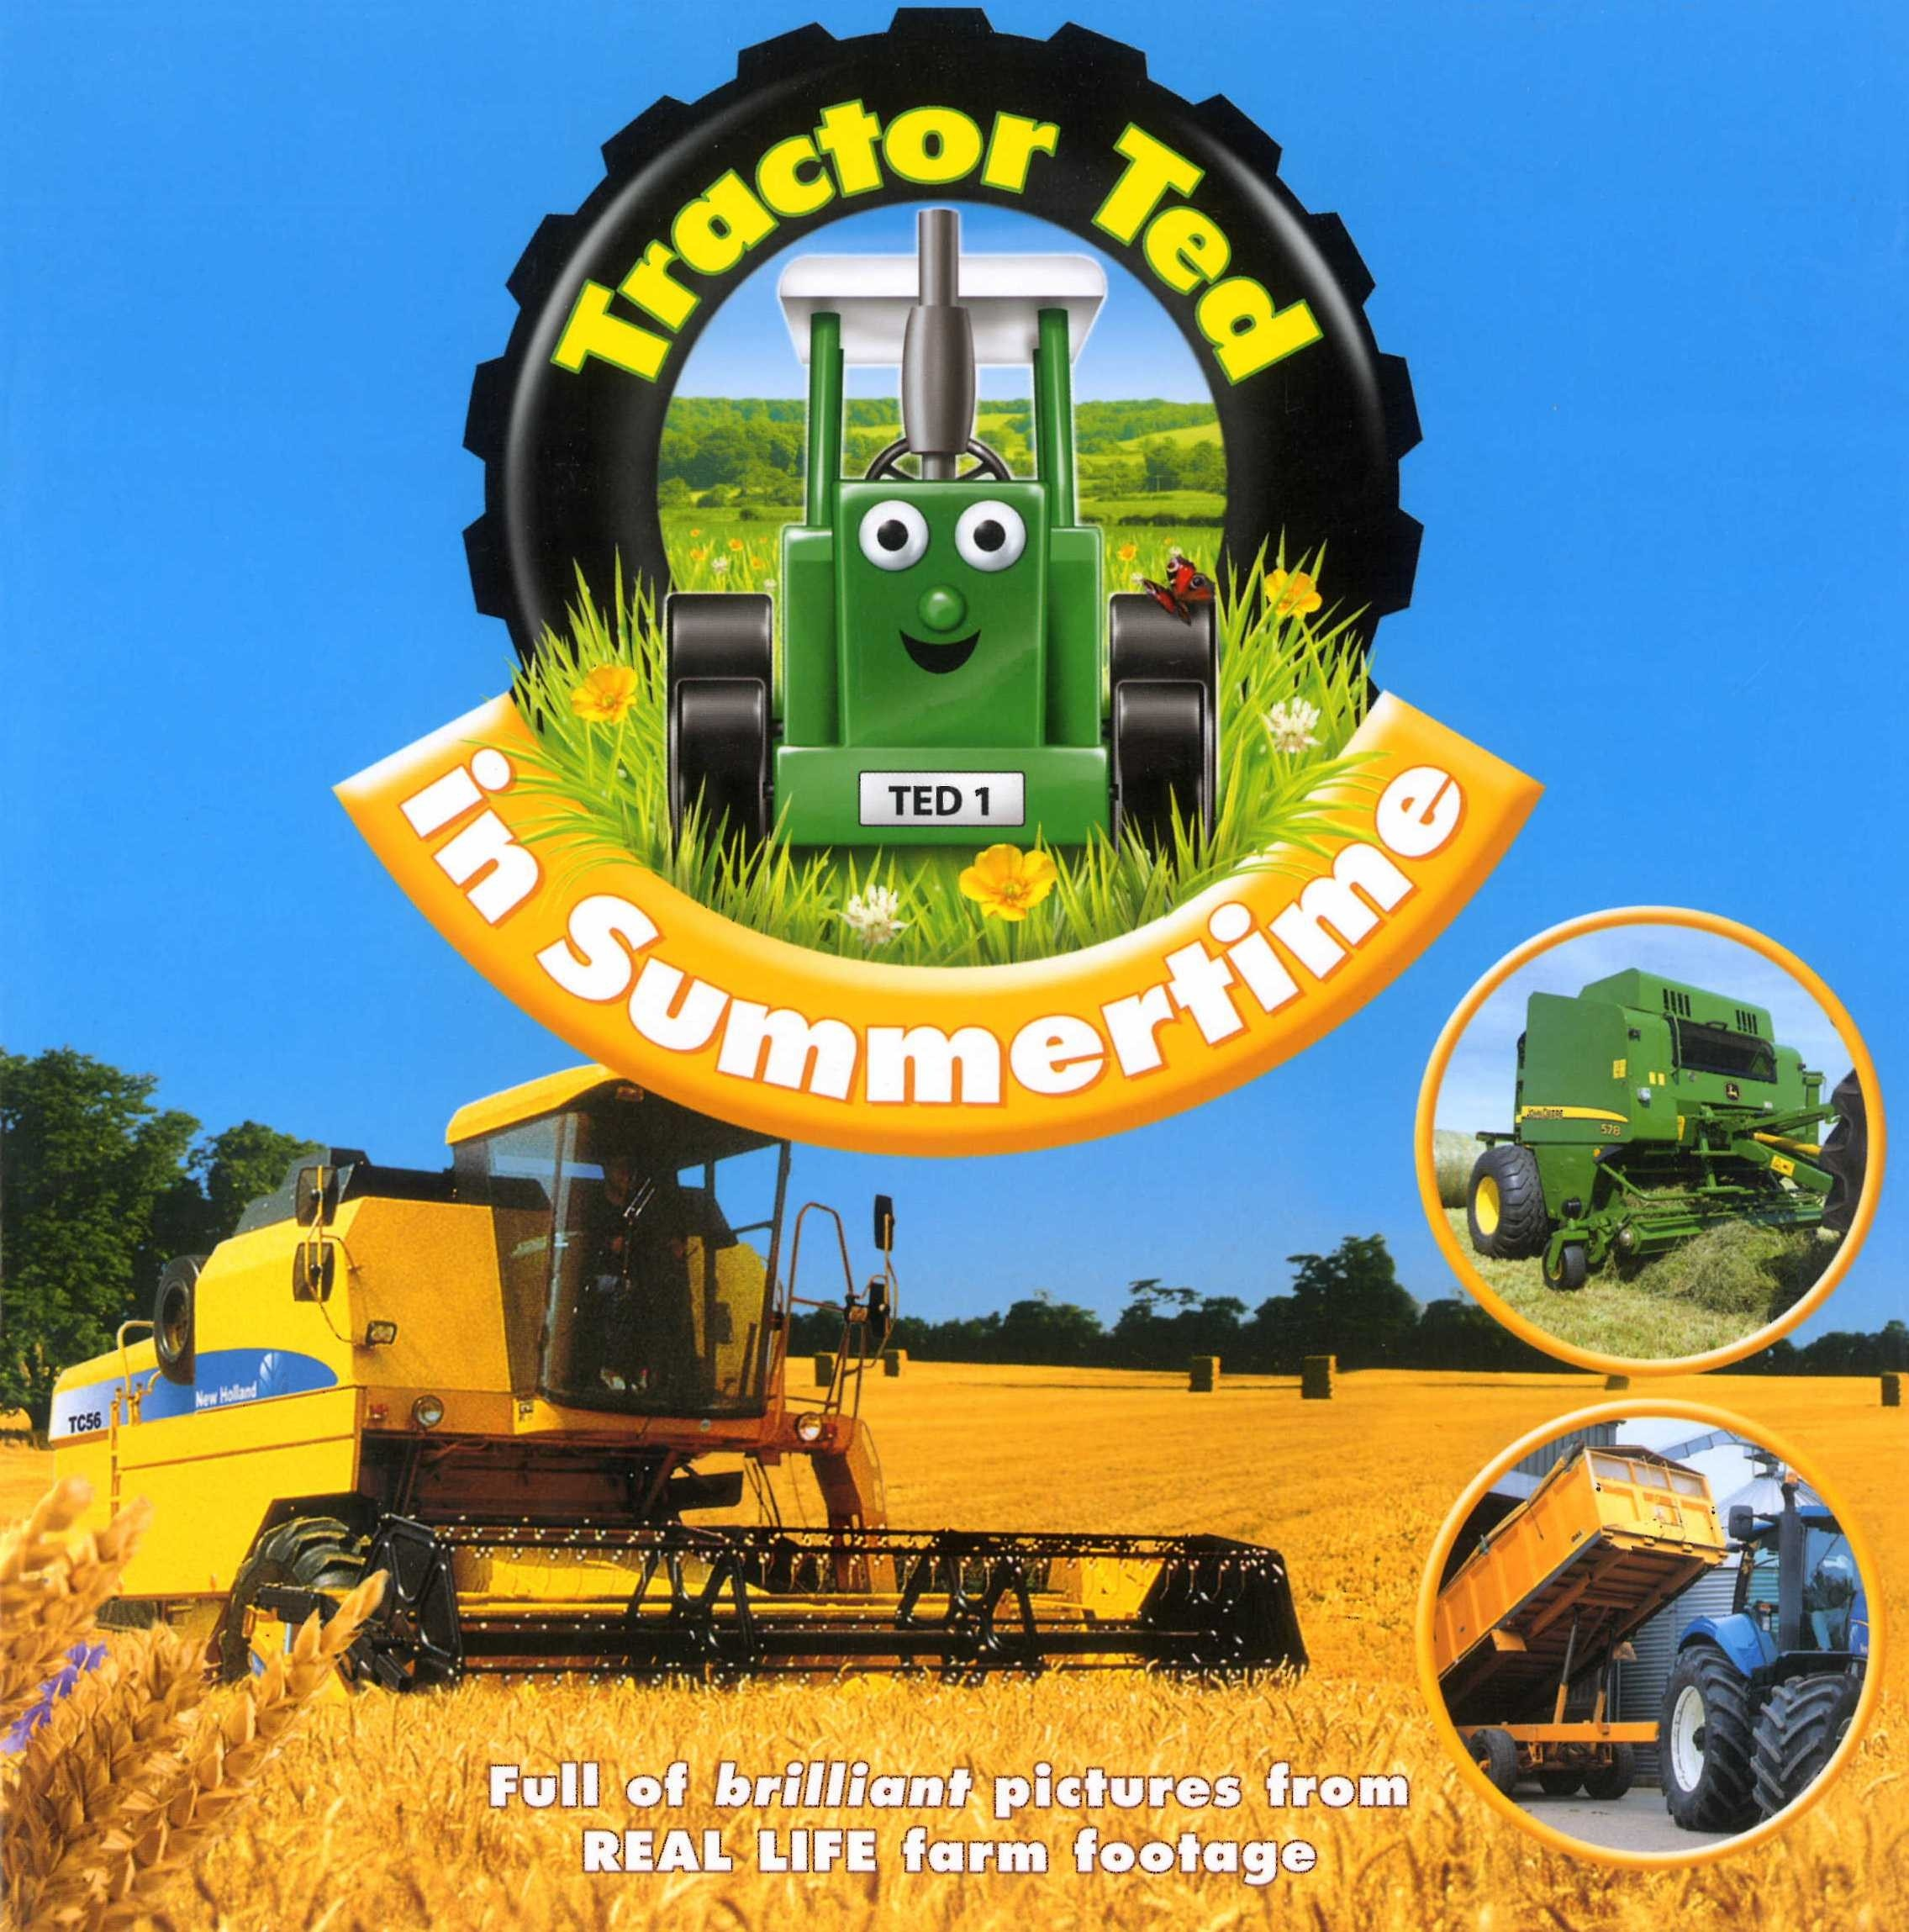 Tractor Ted Book- Summertime